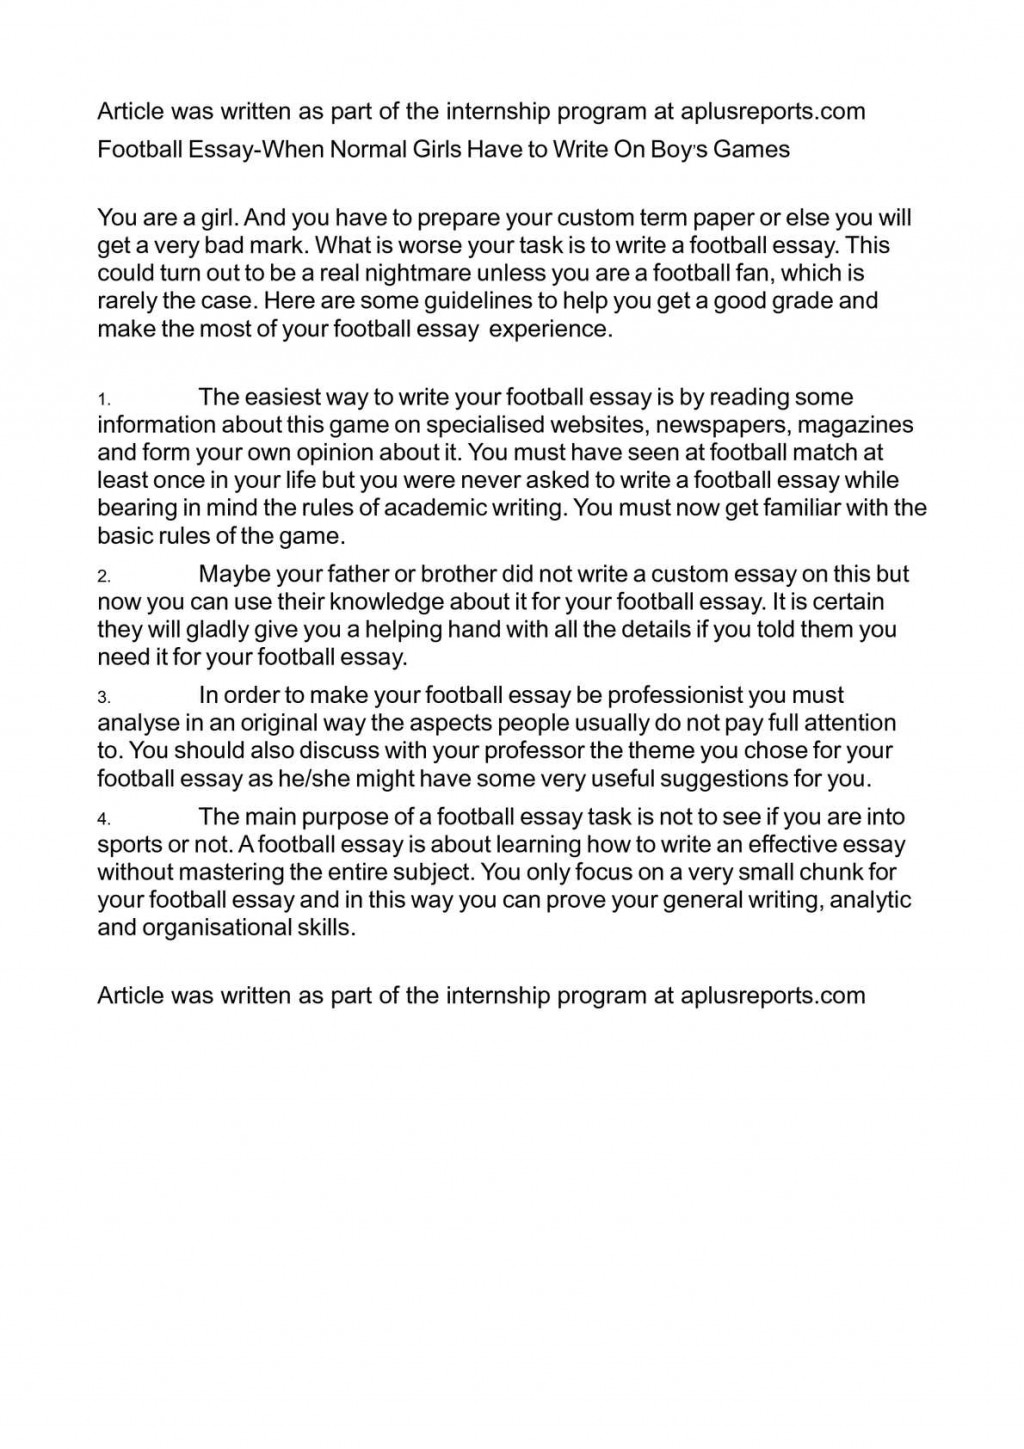 011 Essay Example On Football Top Match For Class 7 Player Large